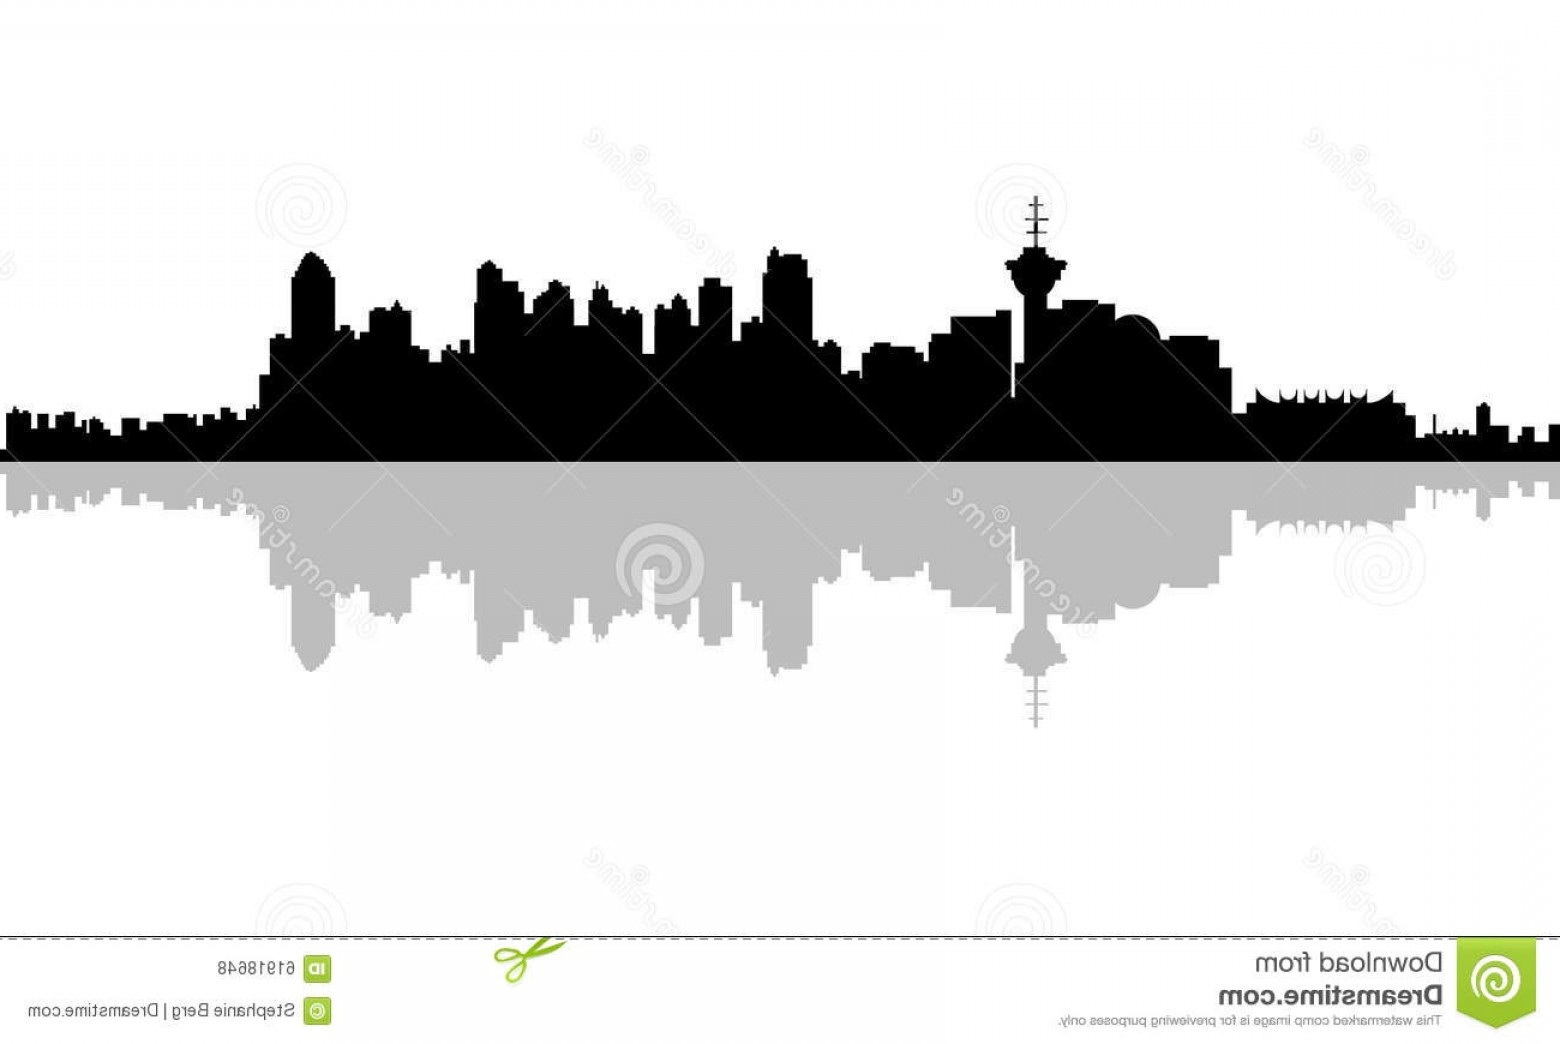 Vancouver Skyline Vector: Stock Illustration Vancouver Silhouette Skyline City British Columbia Canada Image